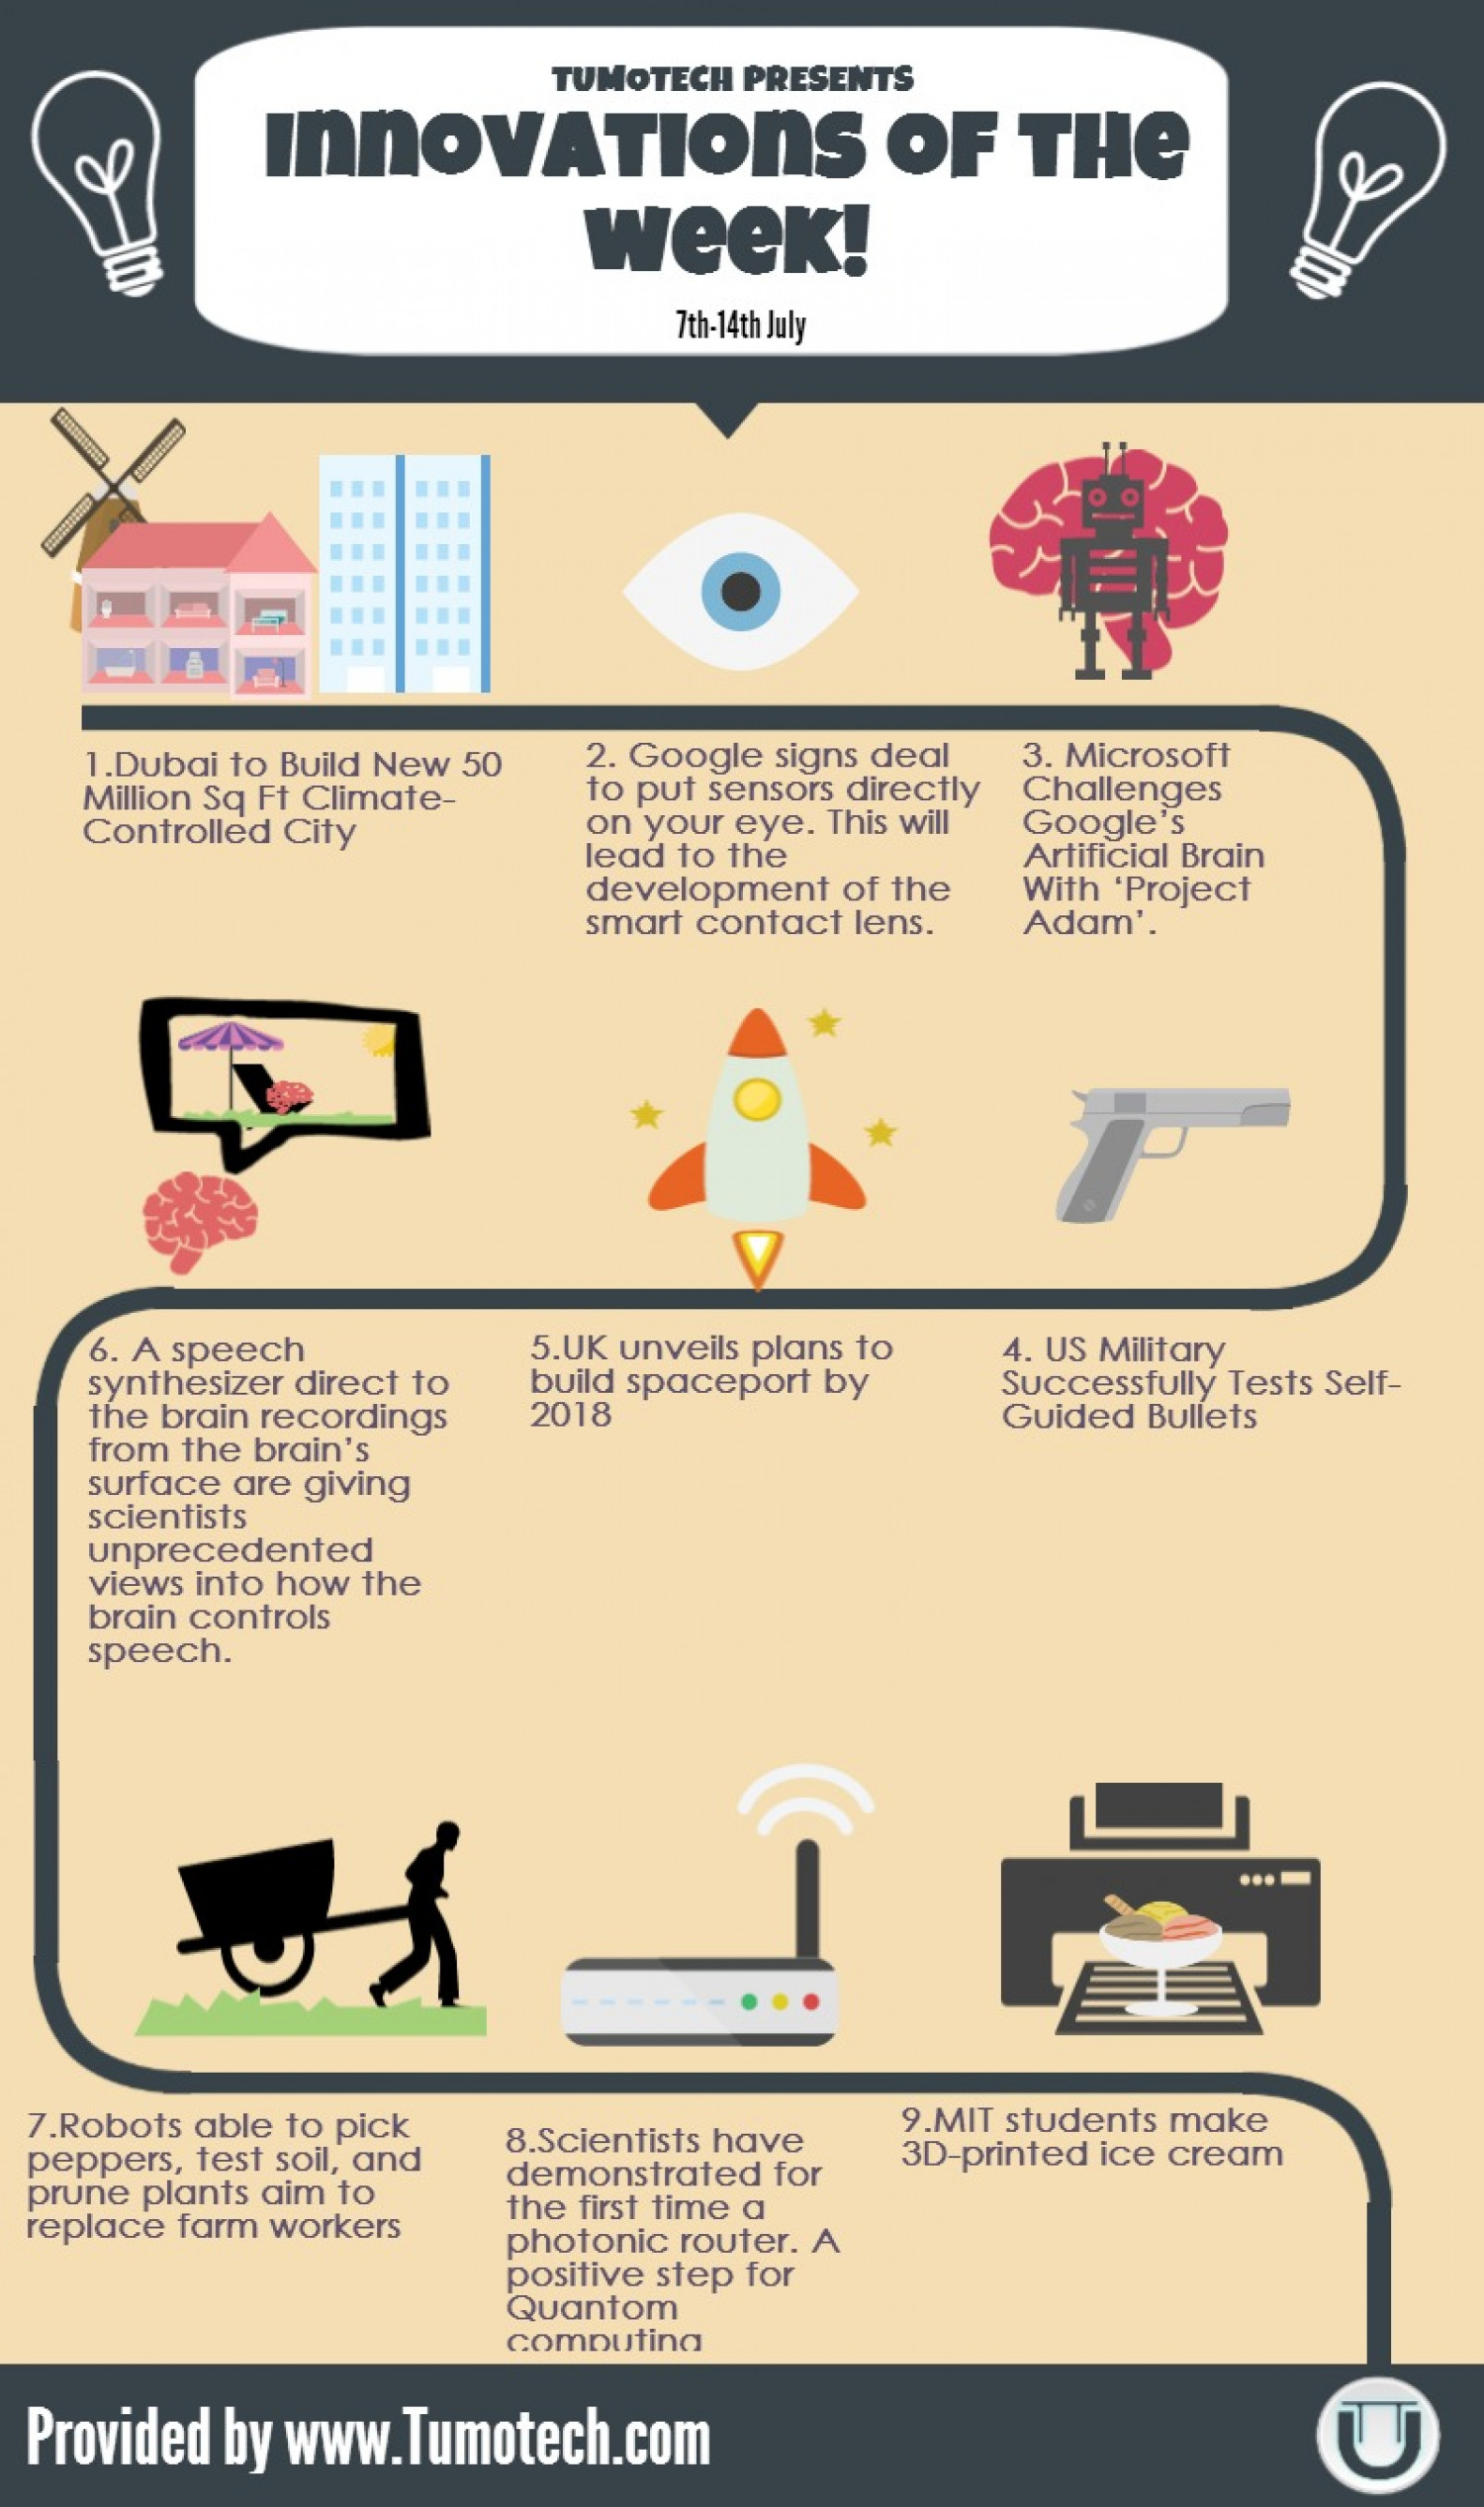 Disruptive innovations and future technology of the week 13th -20th July Infographic